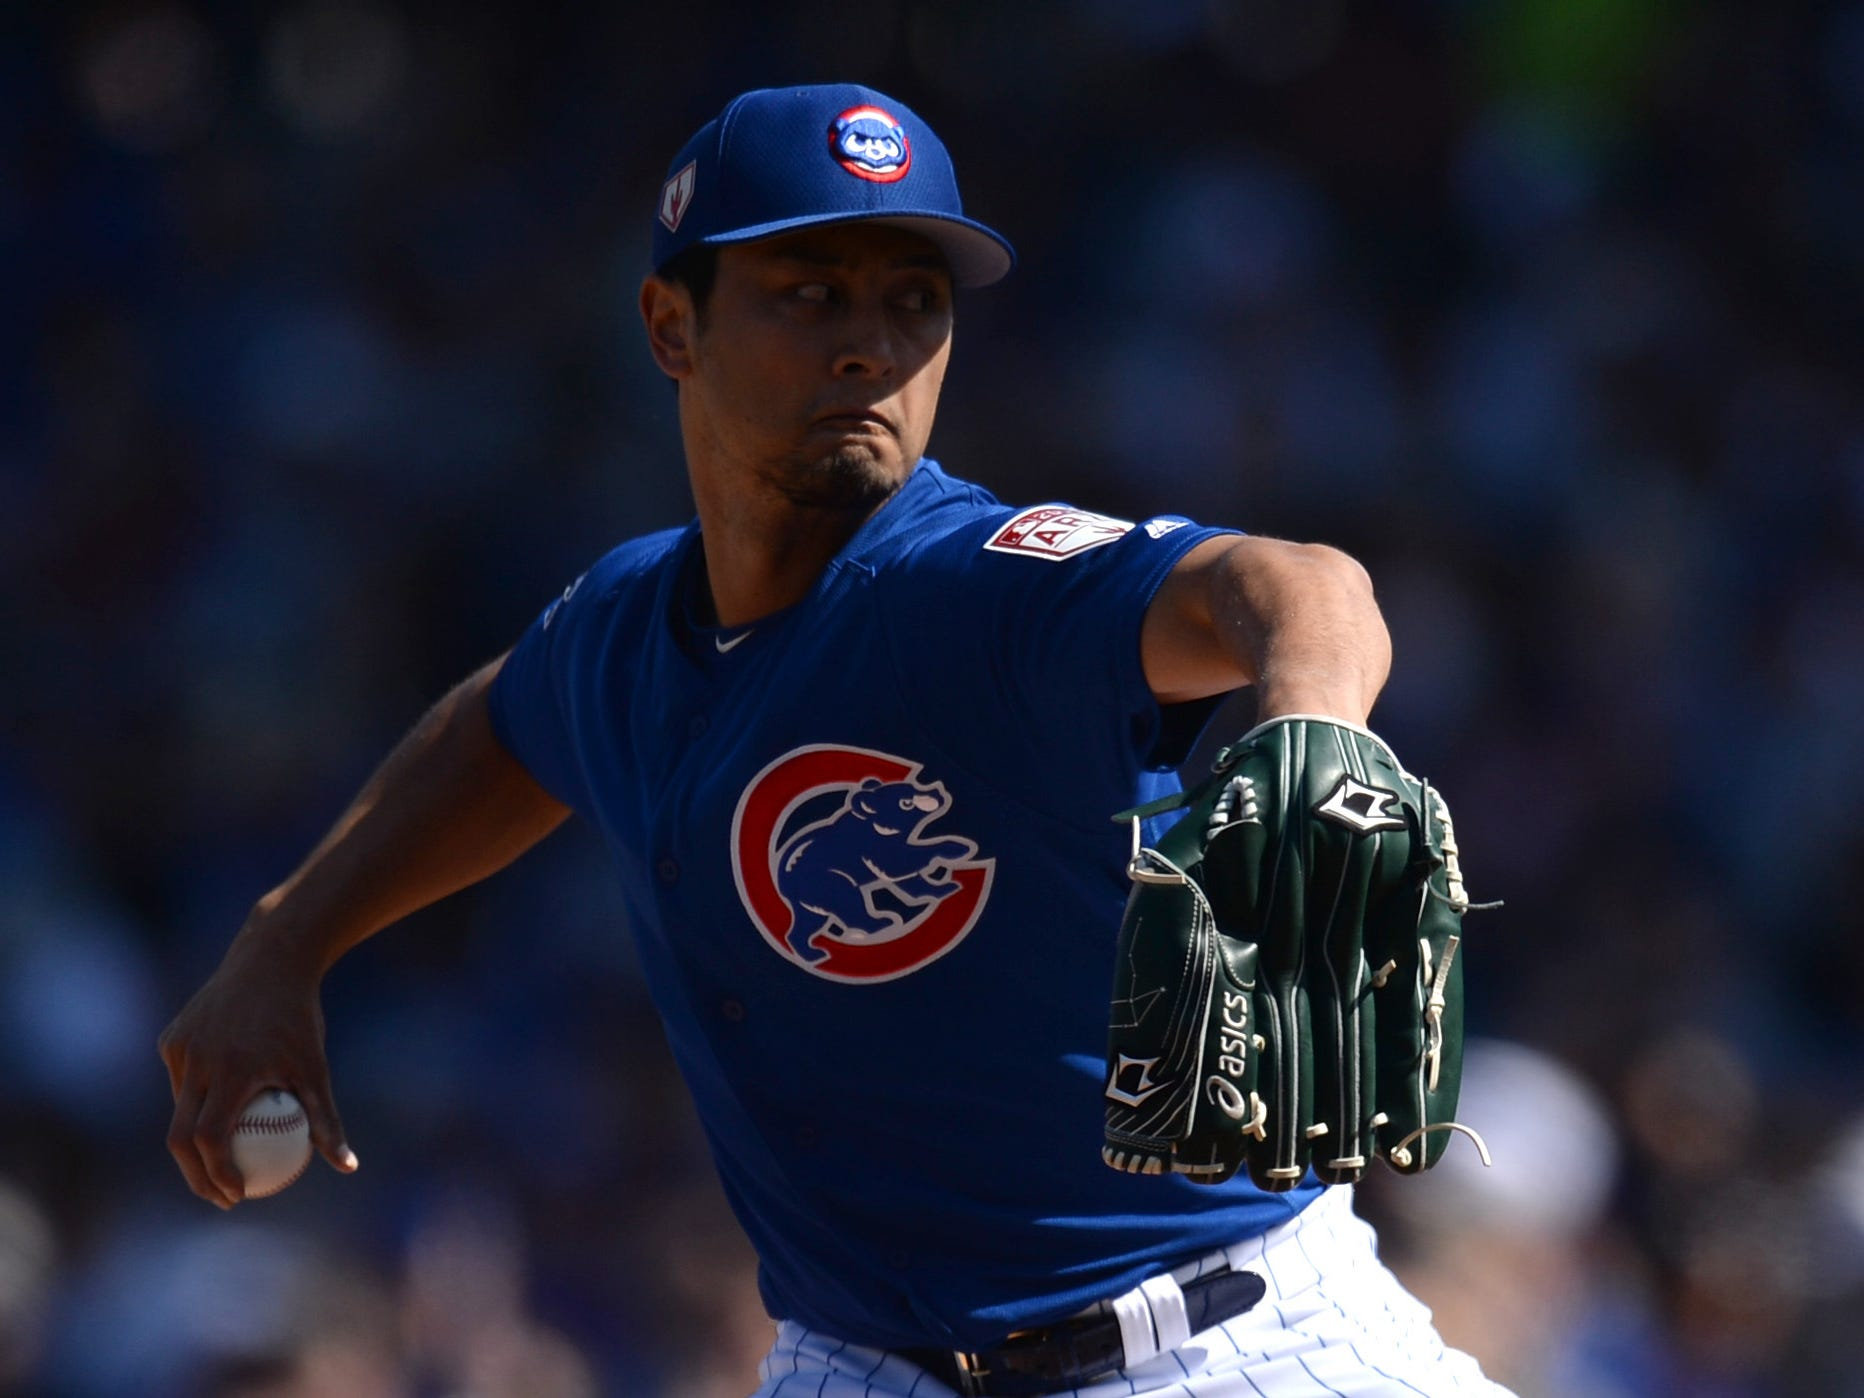 March 3: Cubs starting pitcher Yu Darvish throws a pitch.